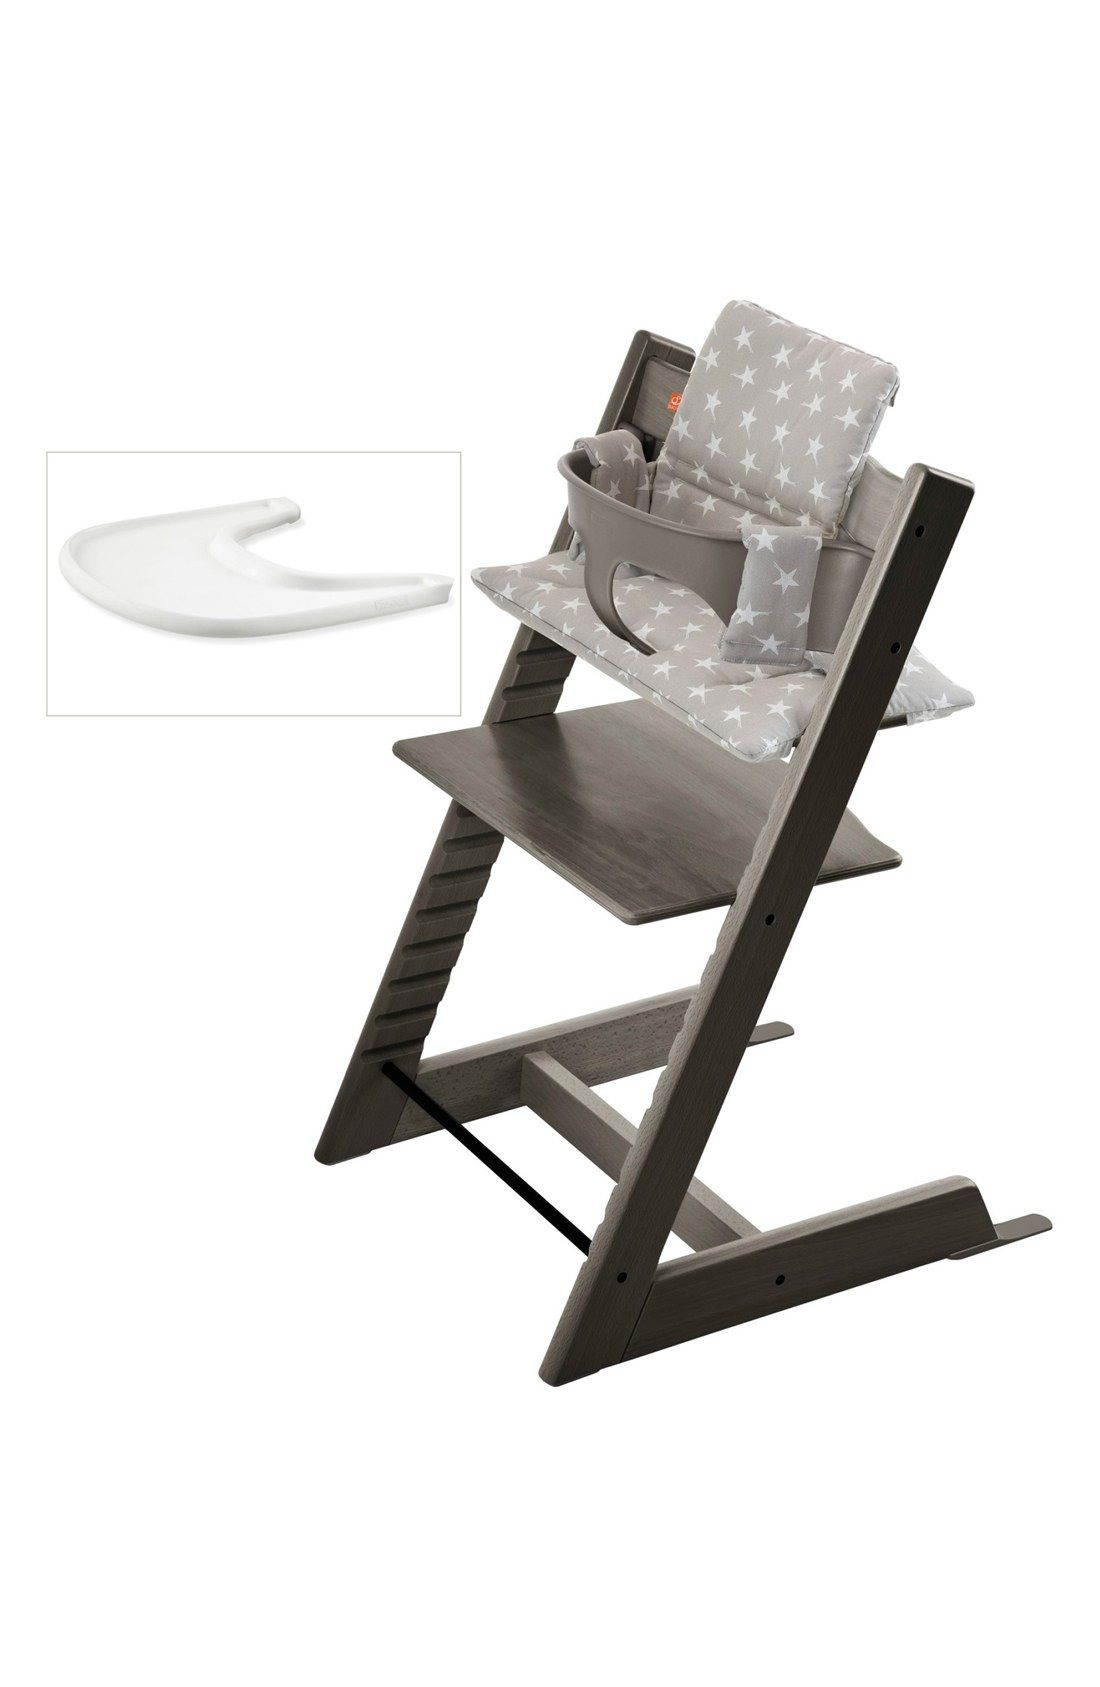 Stokke Tripp Trapp Chair Baby Set Cushion Tray Set Nordstrom Exclusive